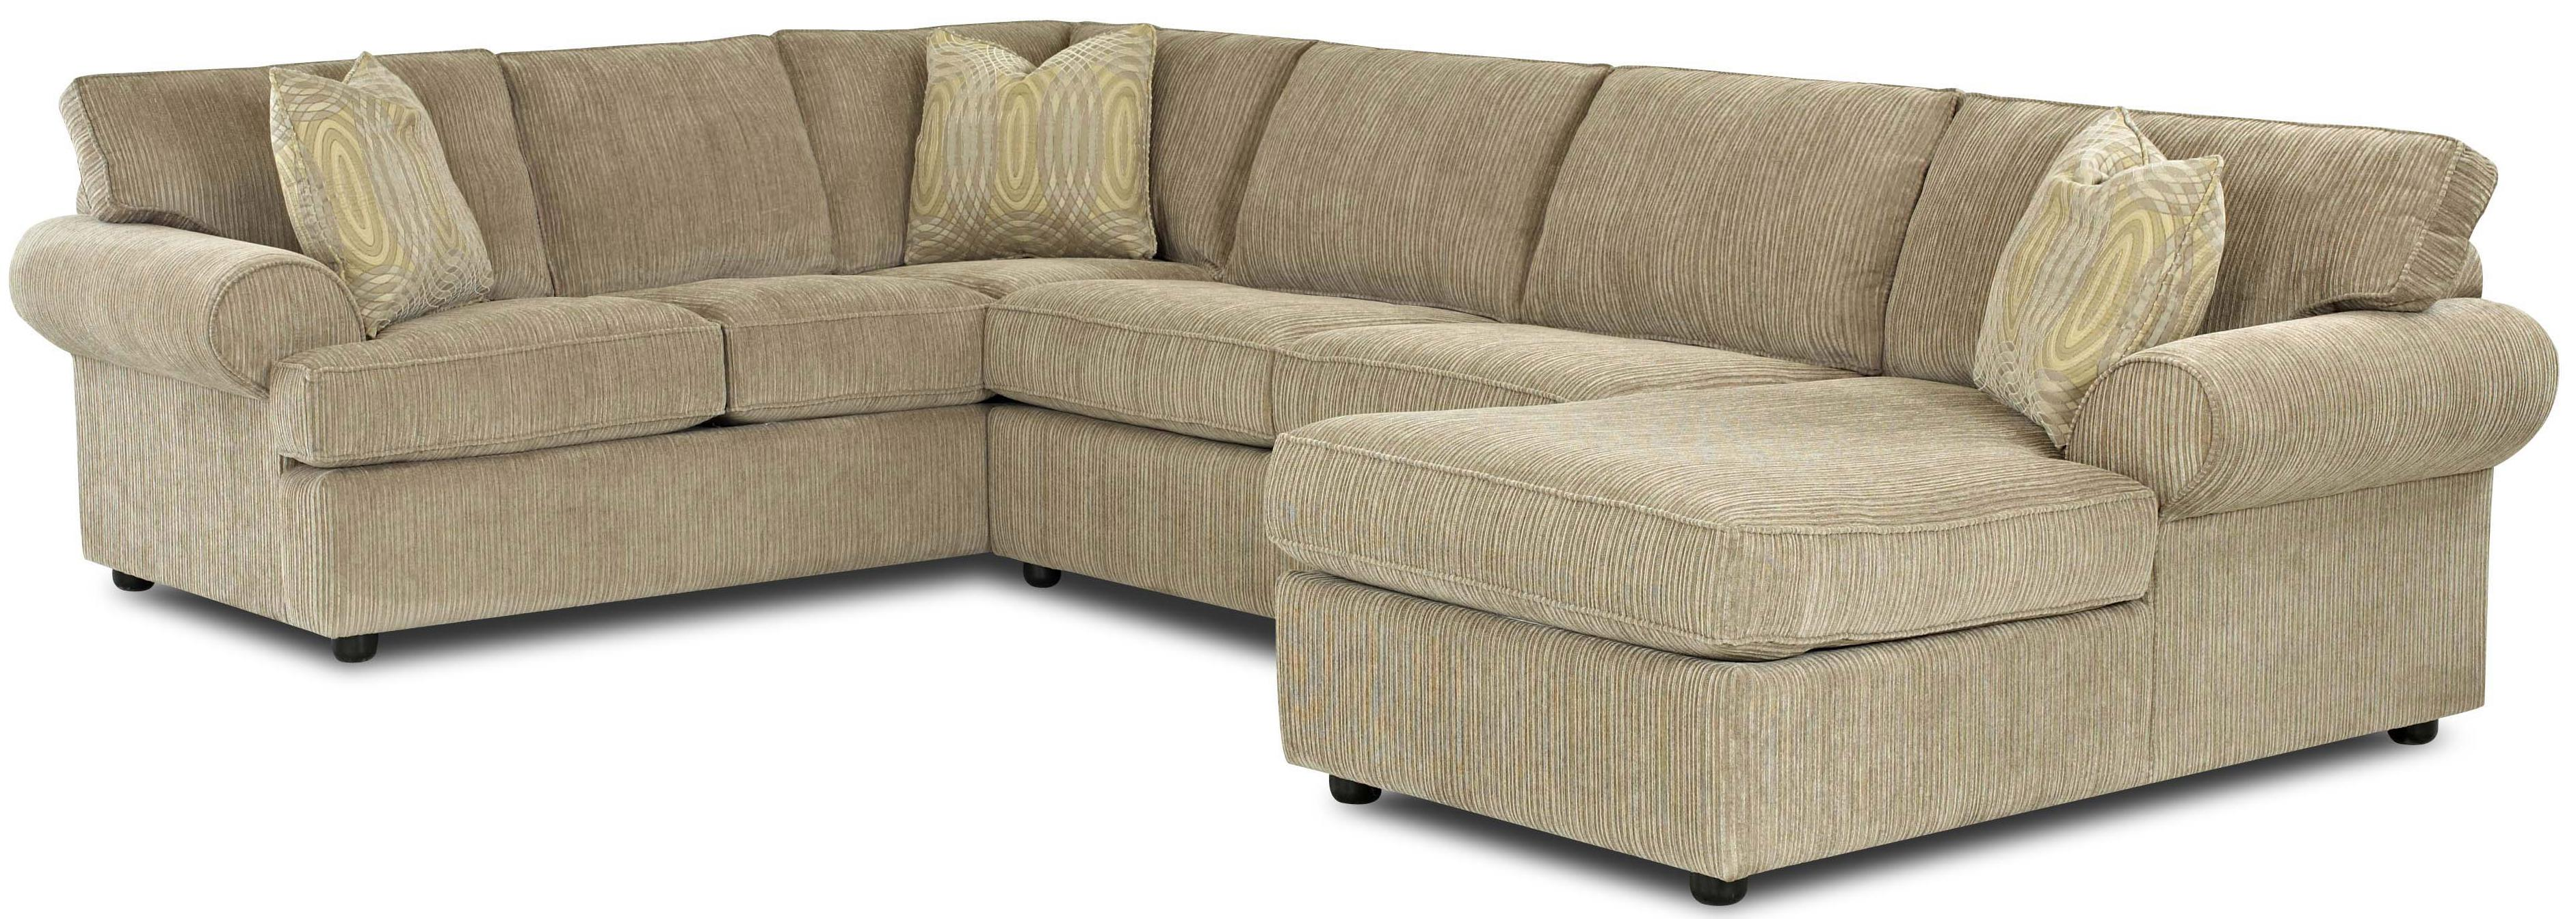 Transitional Sectional Sofa With Rolled Arms And Right Chaise Part 27